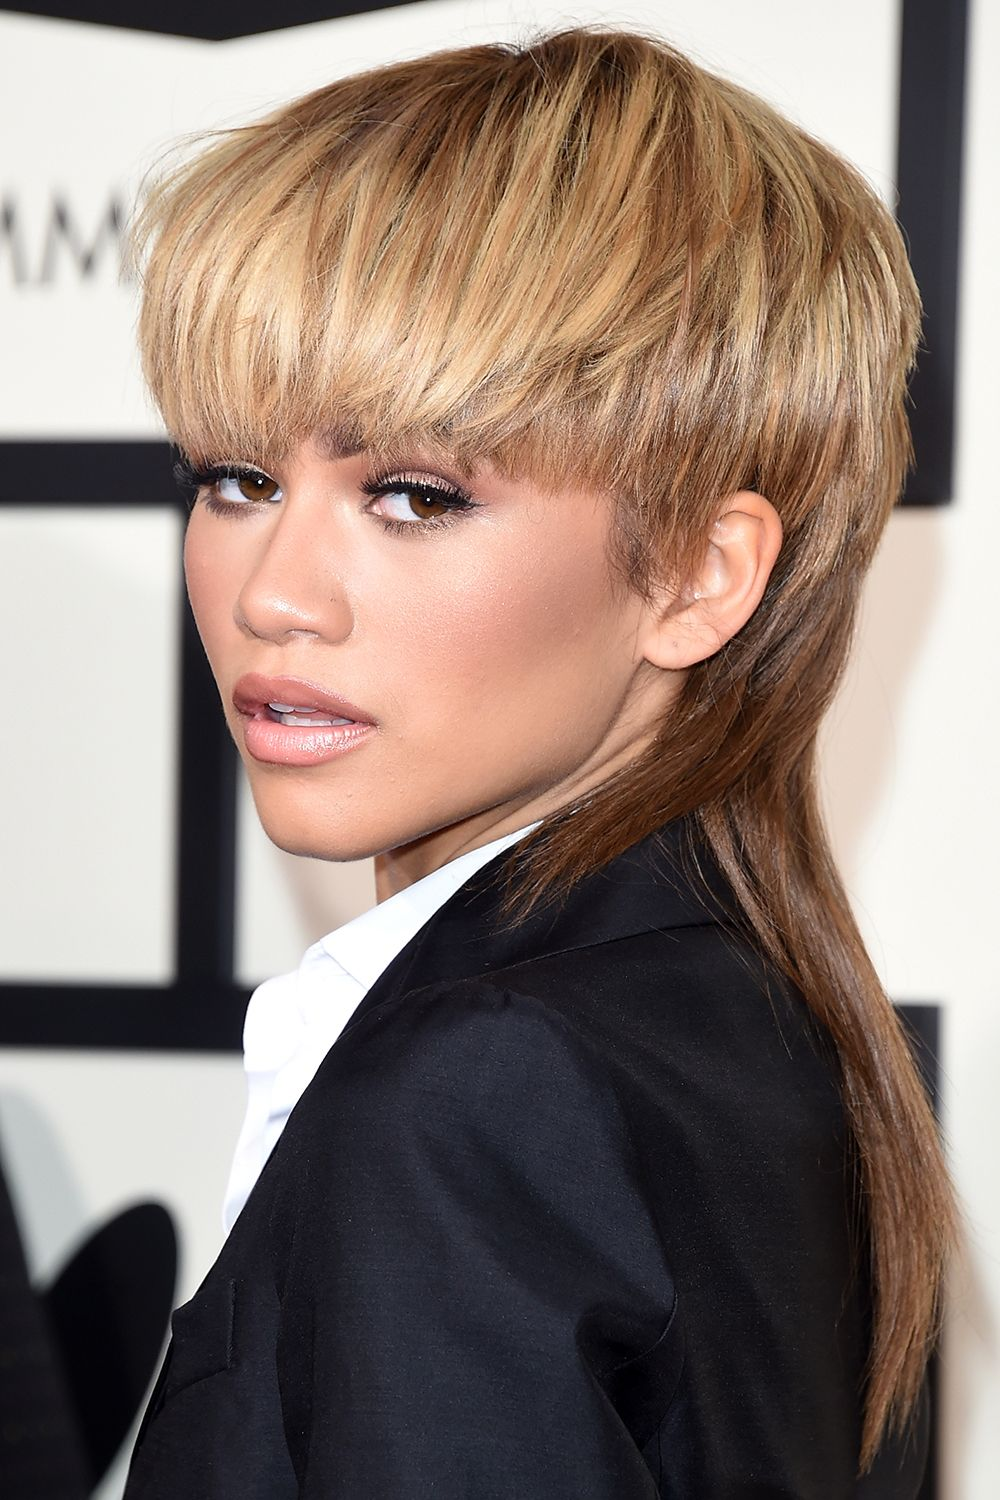 women with mullets - celebrities with mullets history